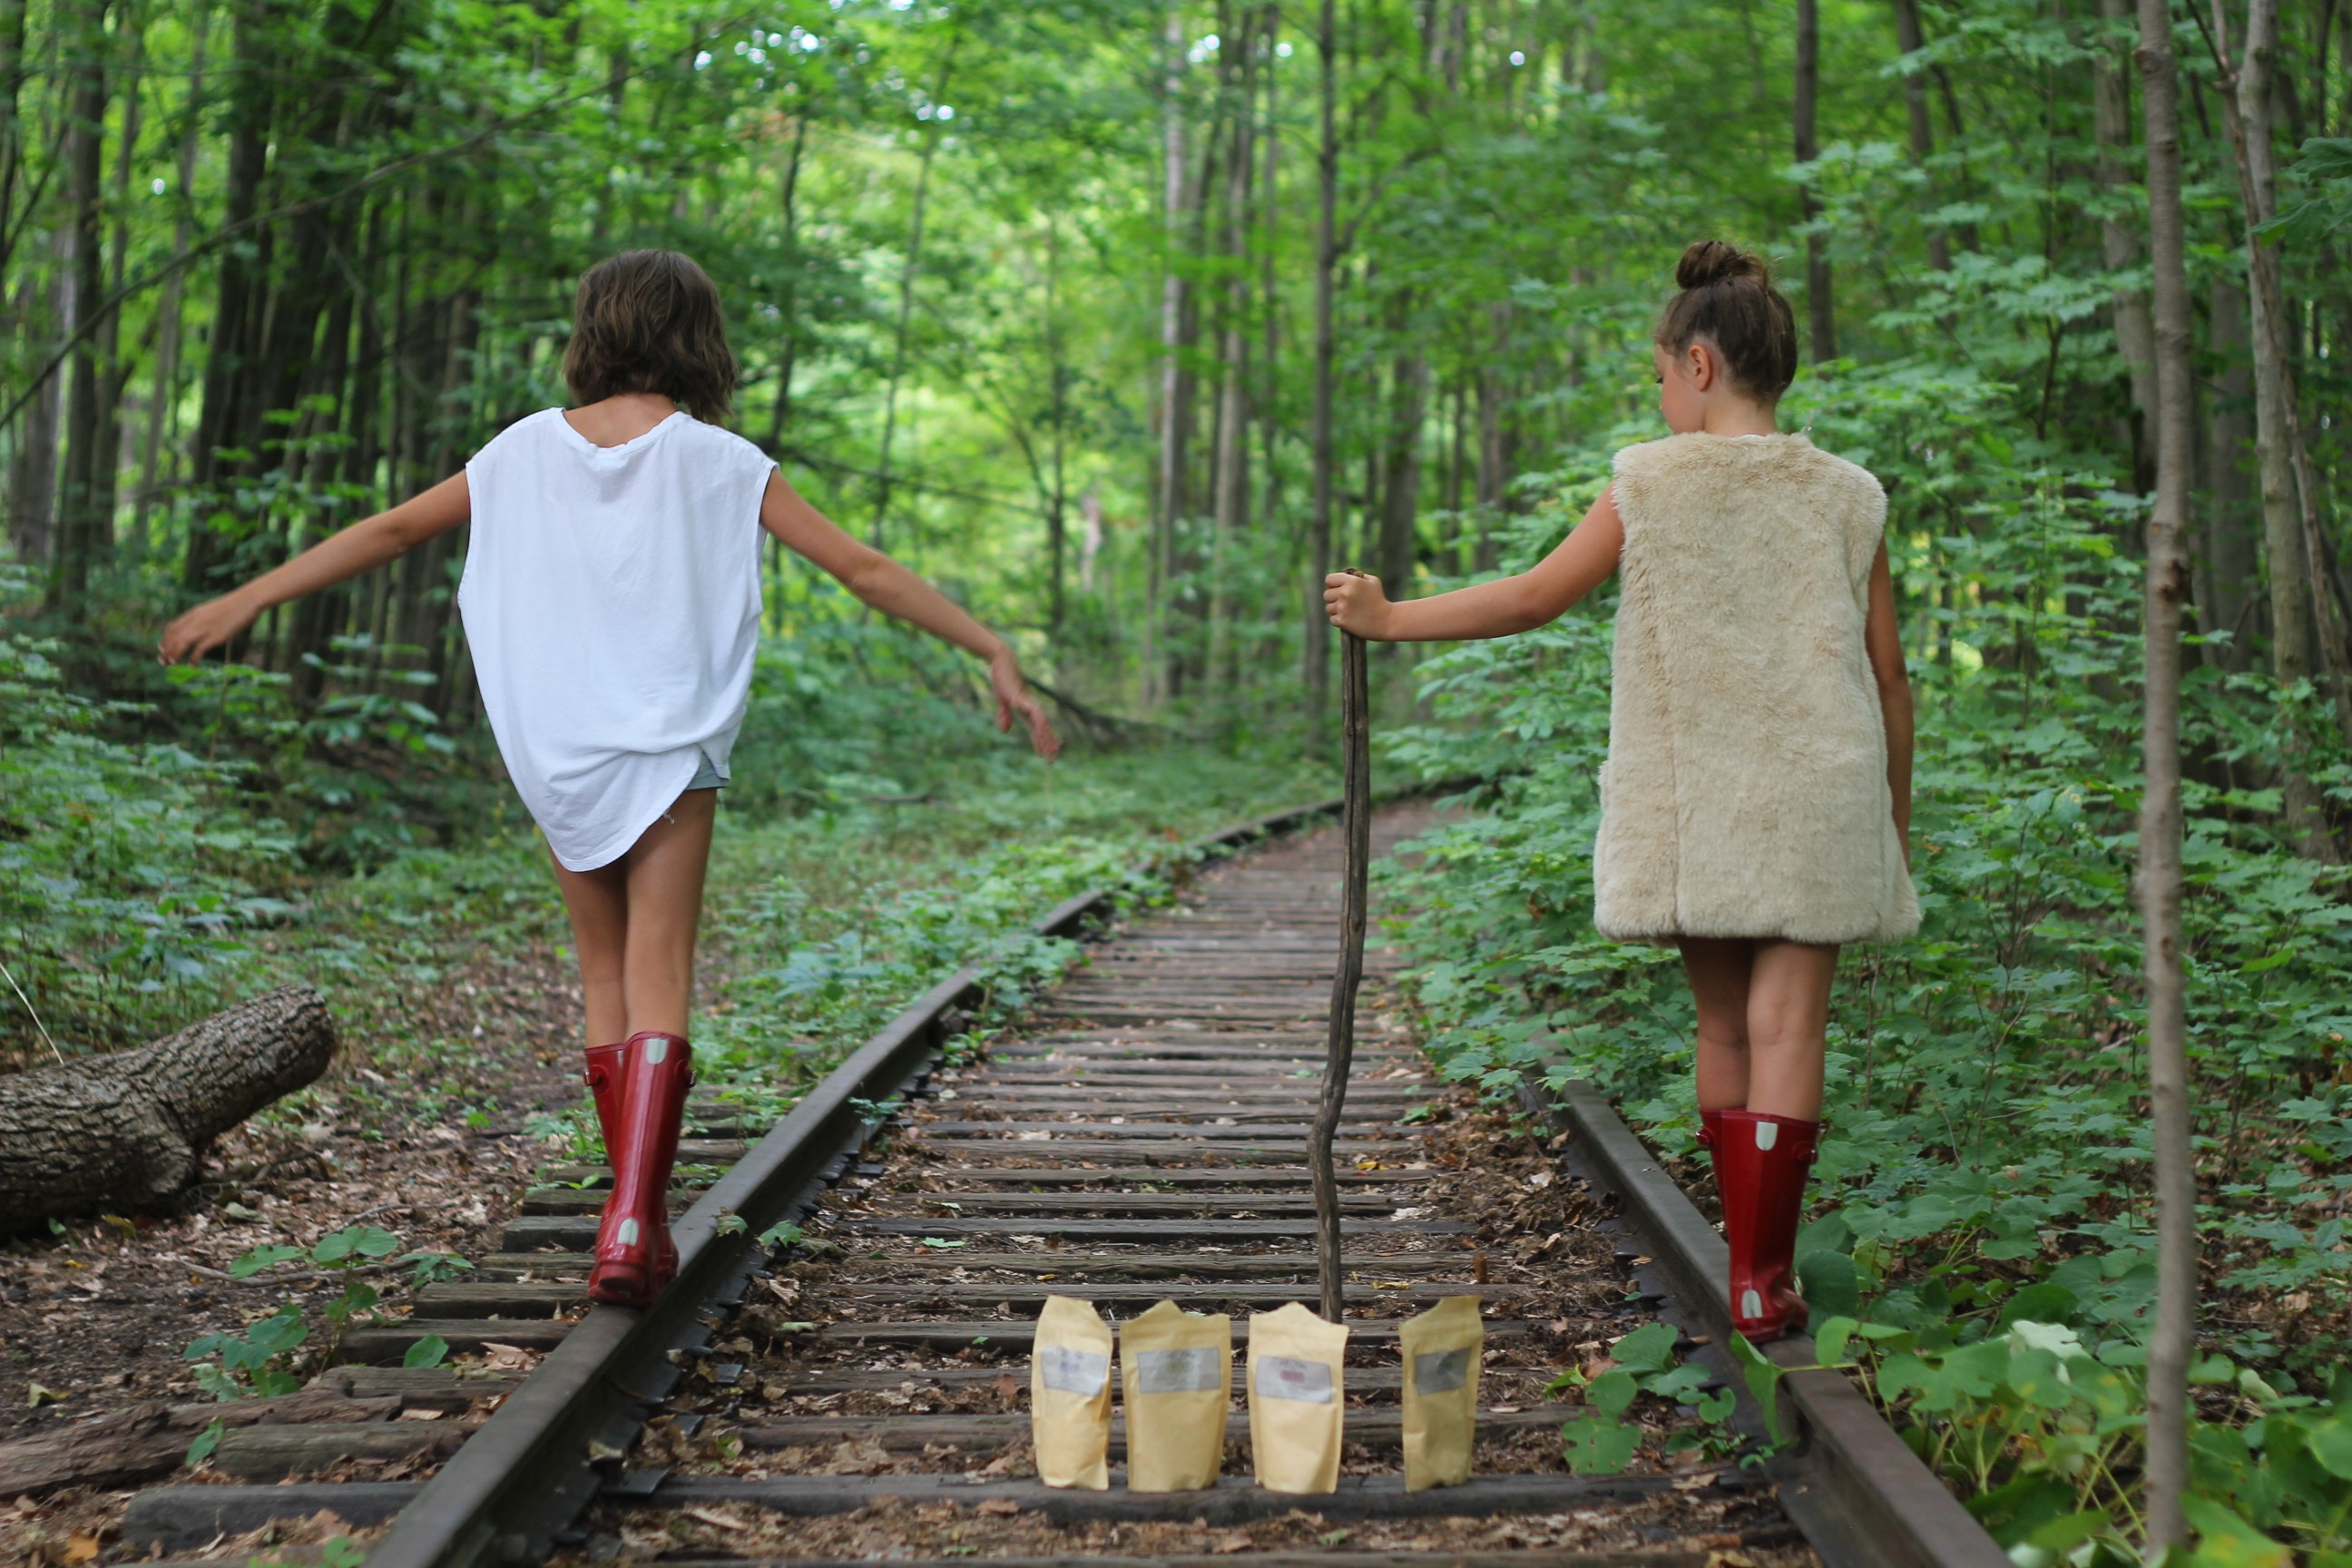 GIRLS ON TRAIN TRACK